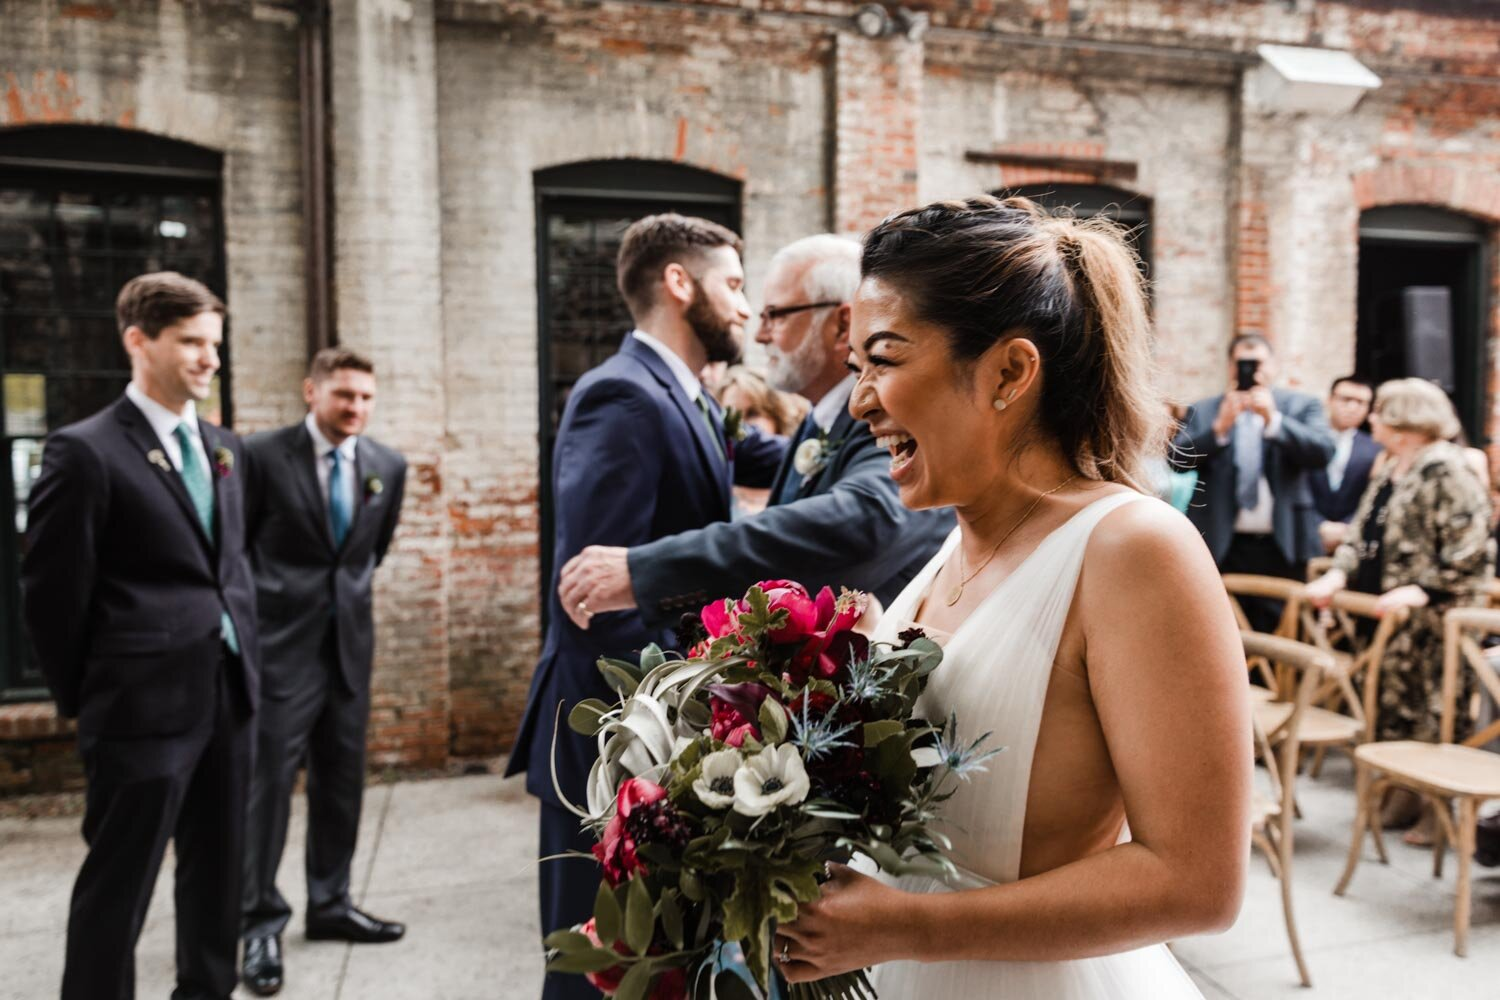 Mt Washington Mill Dye House industrial Baltimore wedding by Barbara O Photography-182.jpg